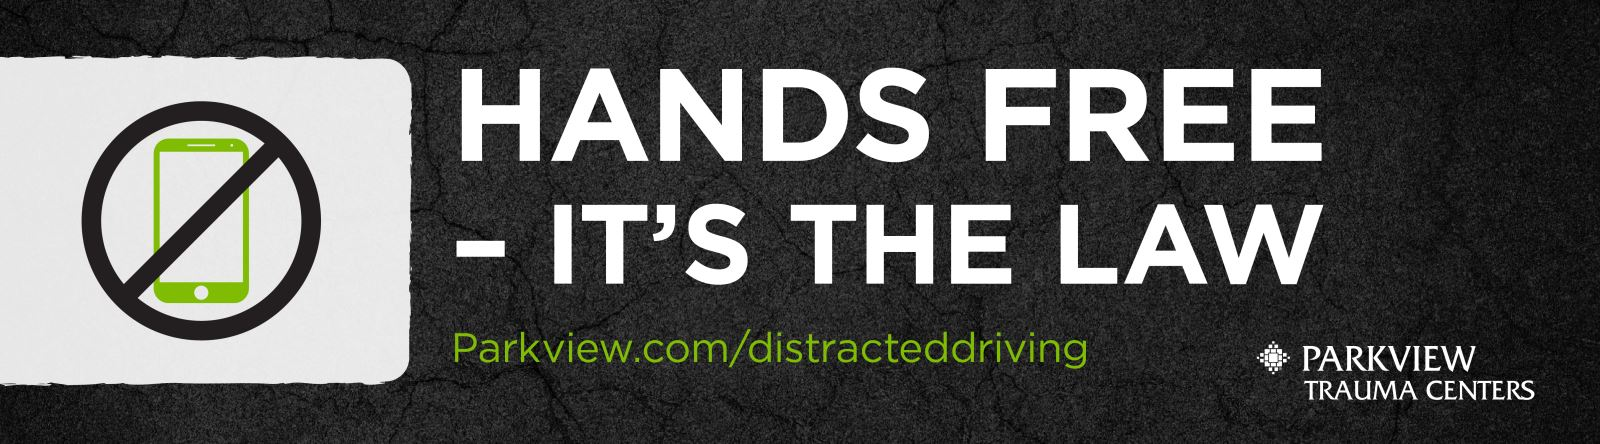 Parkview Hands Free Distracted Driving Initiative